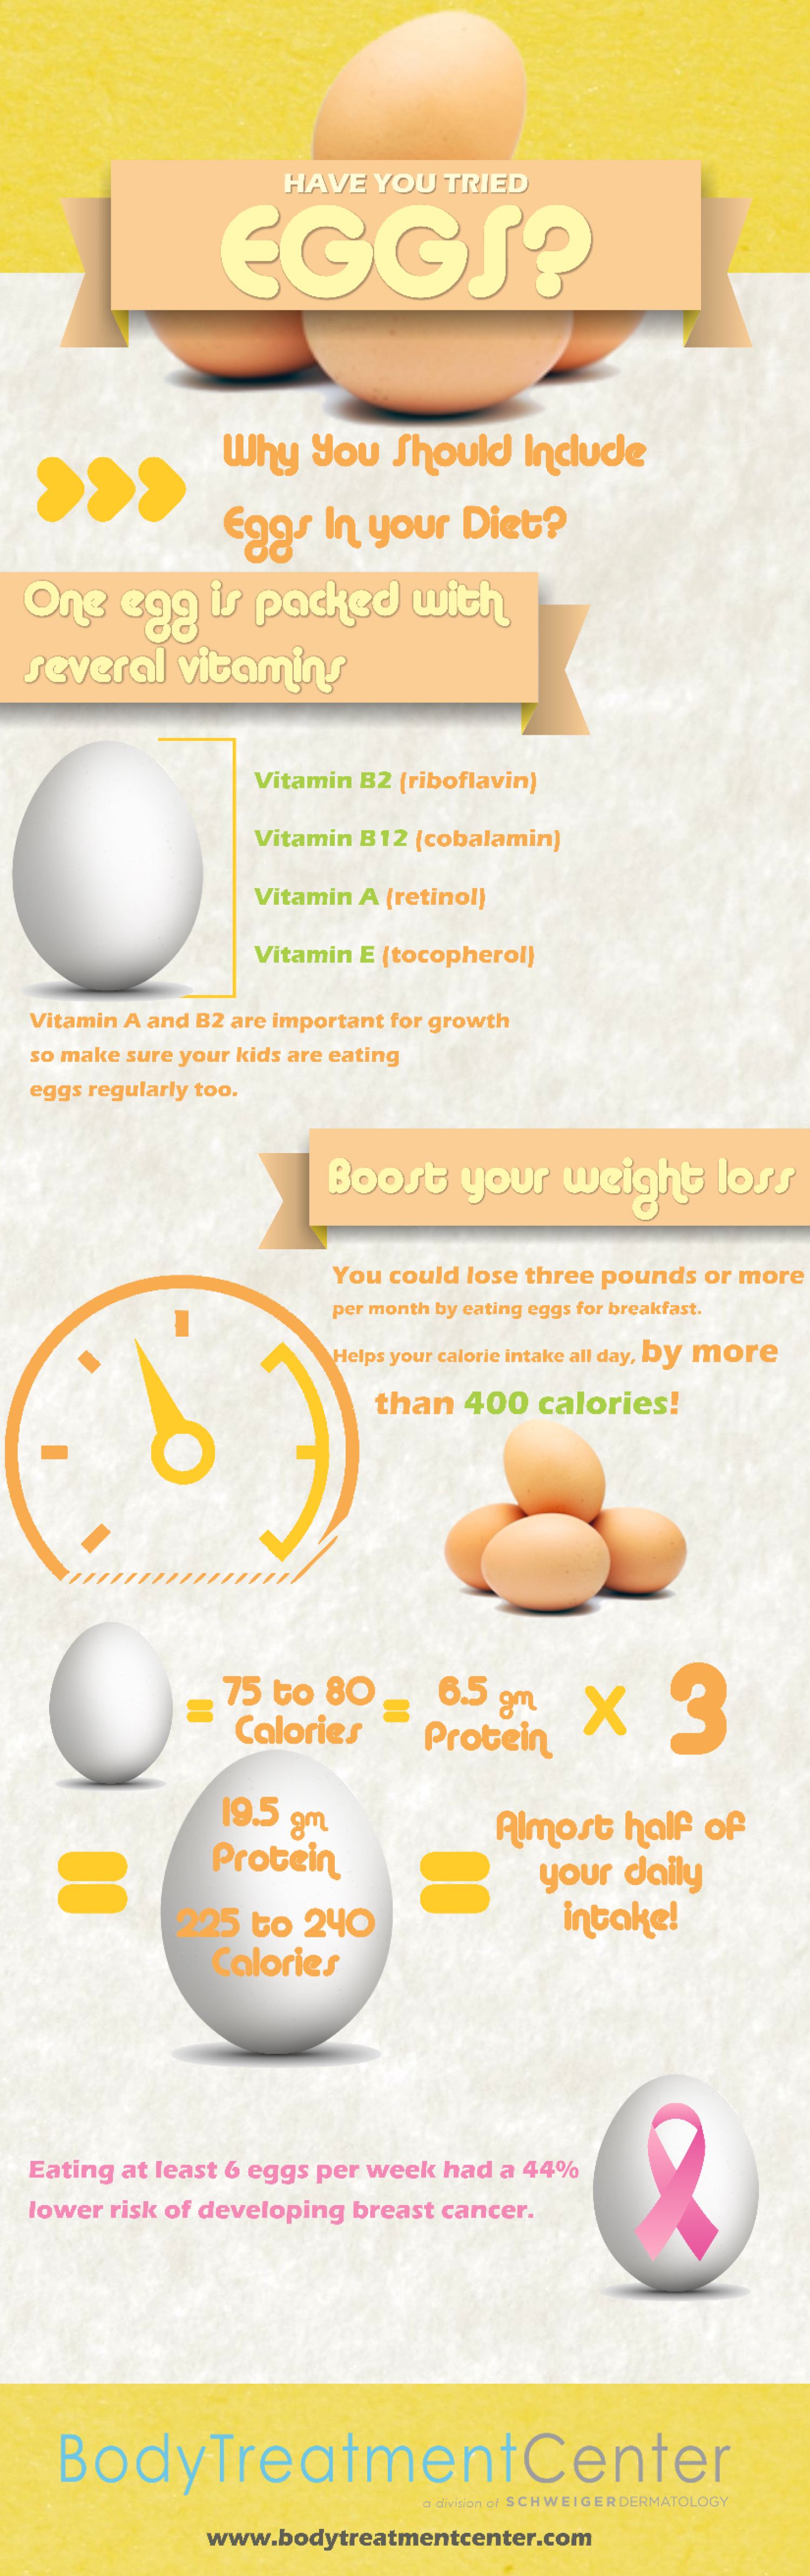 Have You Tried Eggs? Infographic